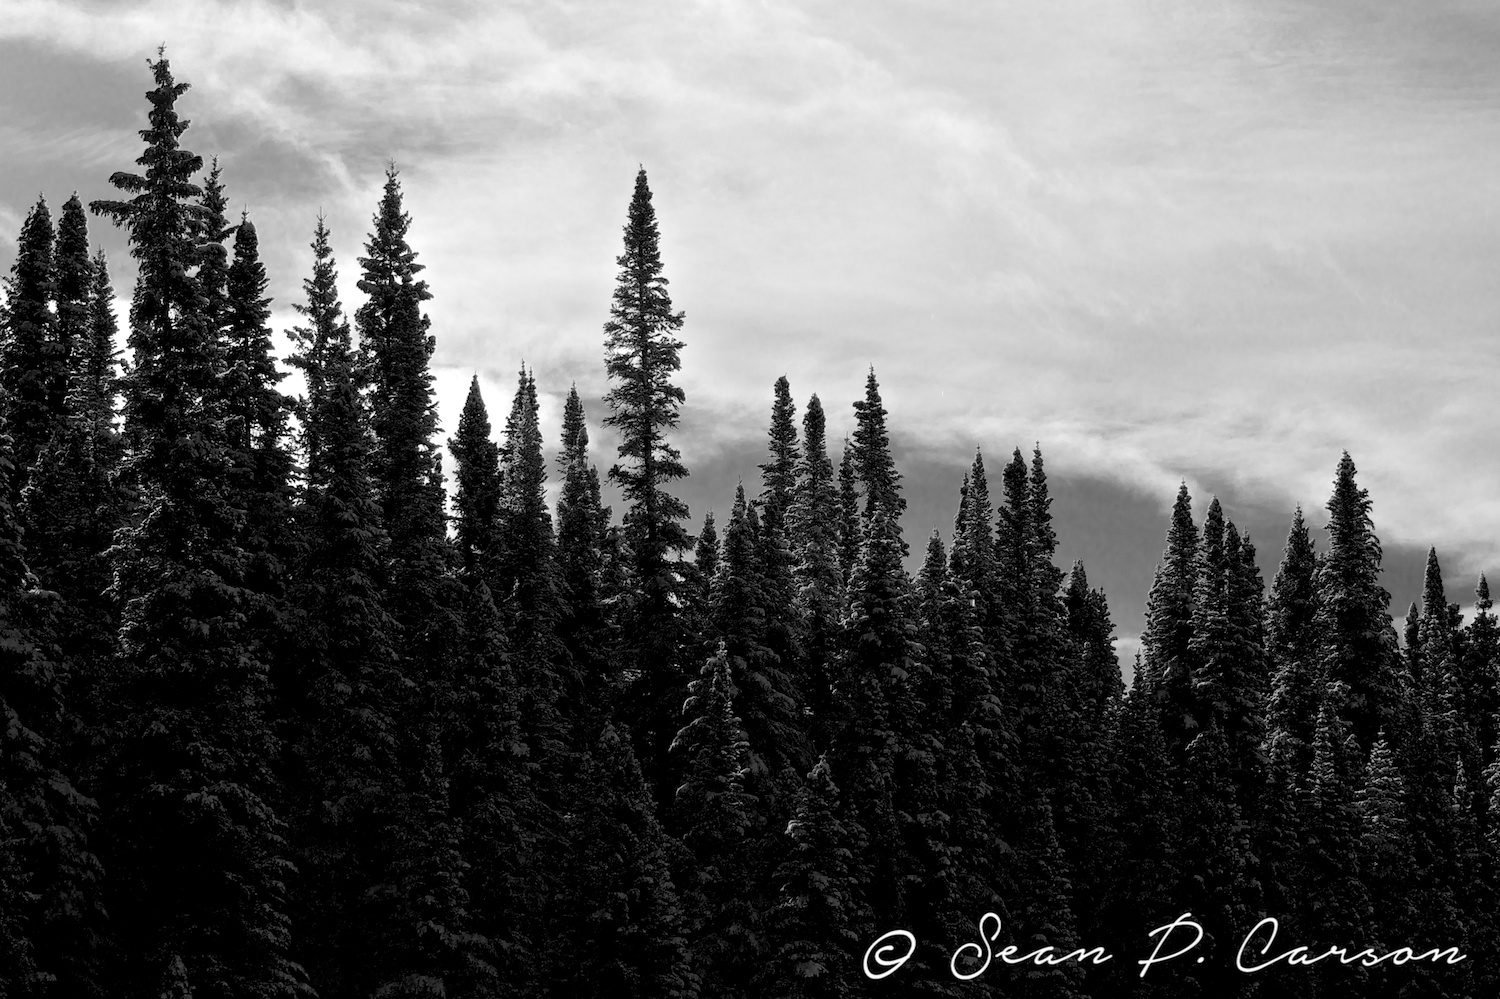 140014-19414-20141031_north-by-north-east-exposure-studio-photography-sean-p-carson.jpg